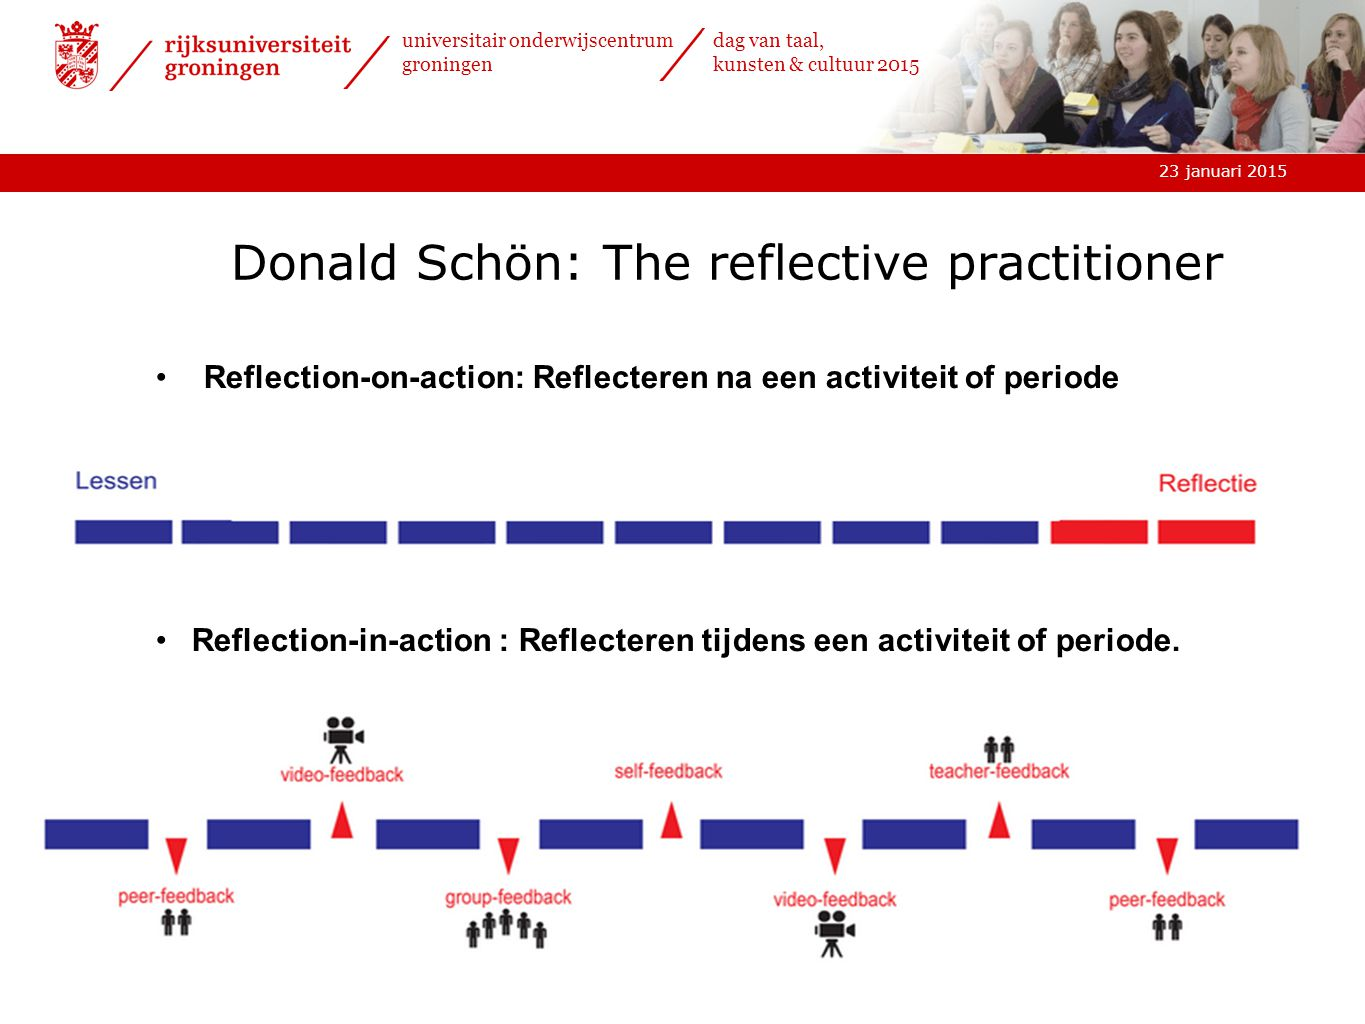 Donald Schön: The reflective practitioner